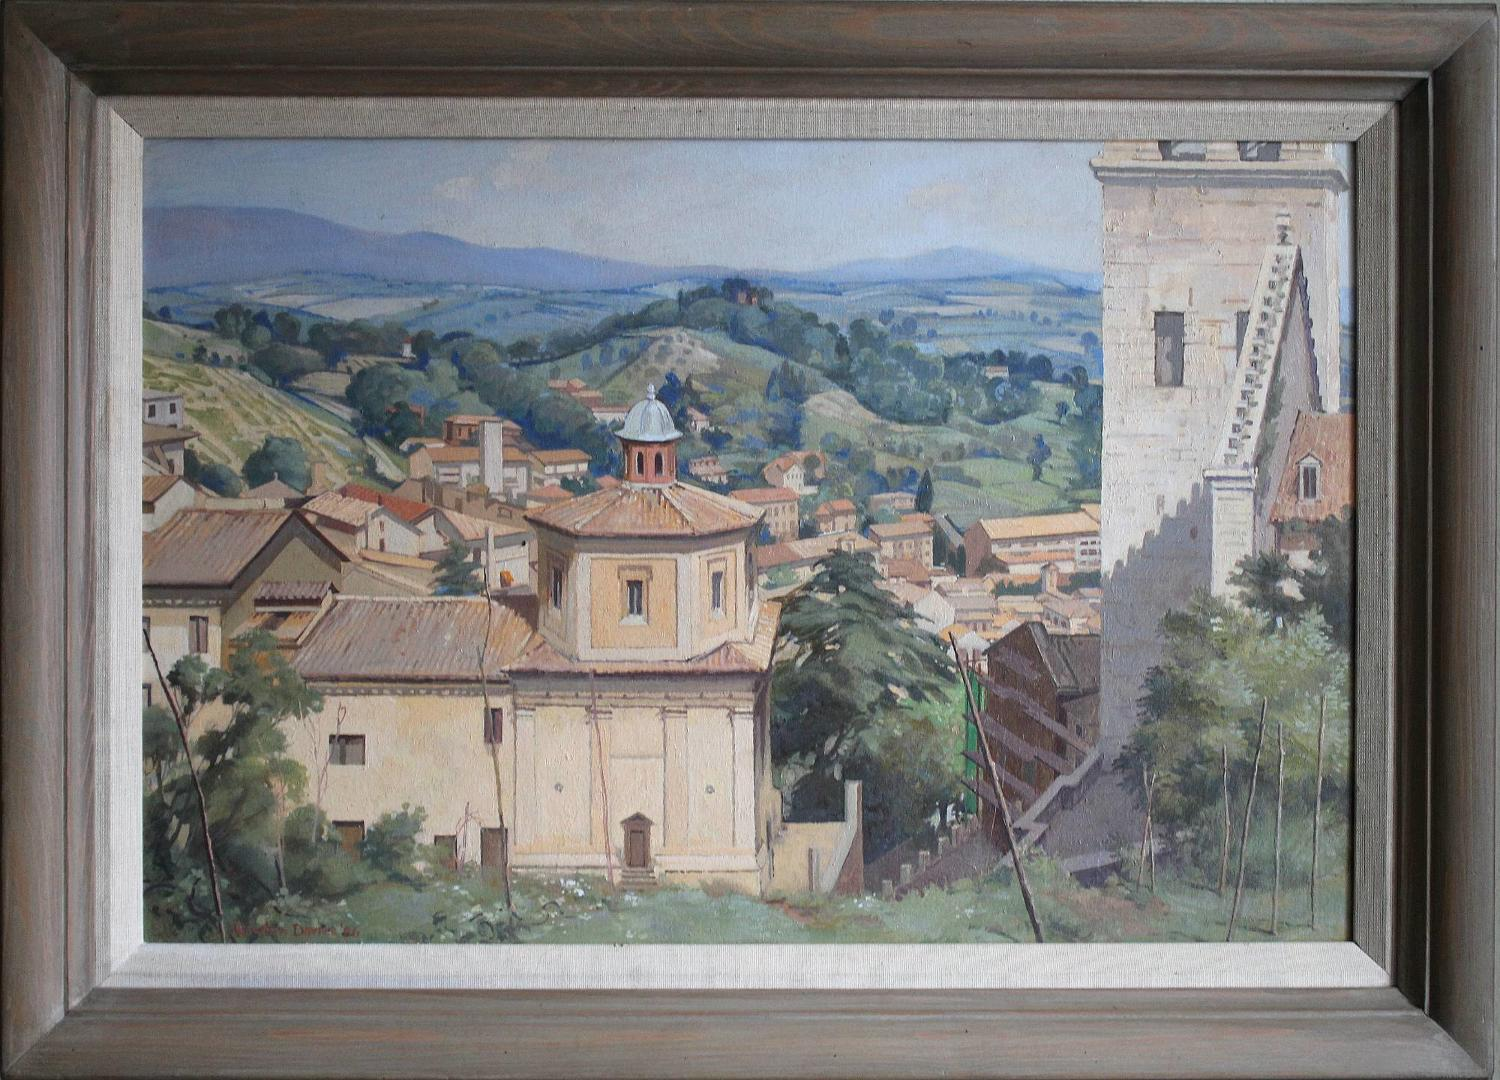 Gordon Davies, Spoleto, Italy, Oil on Board